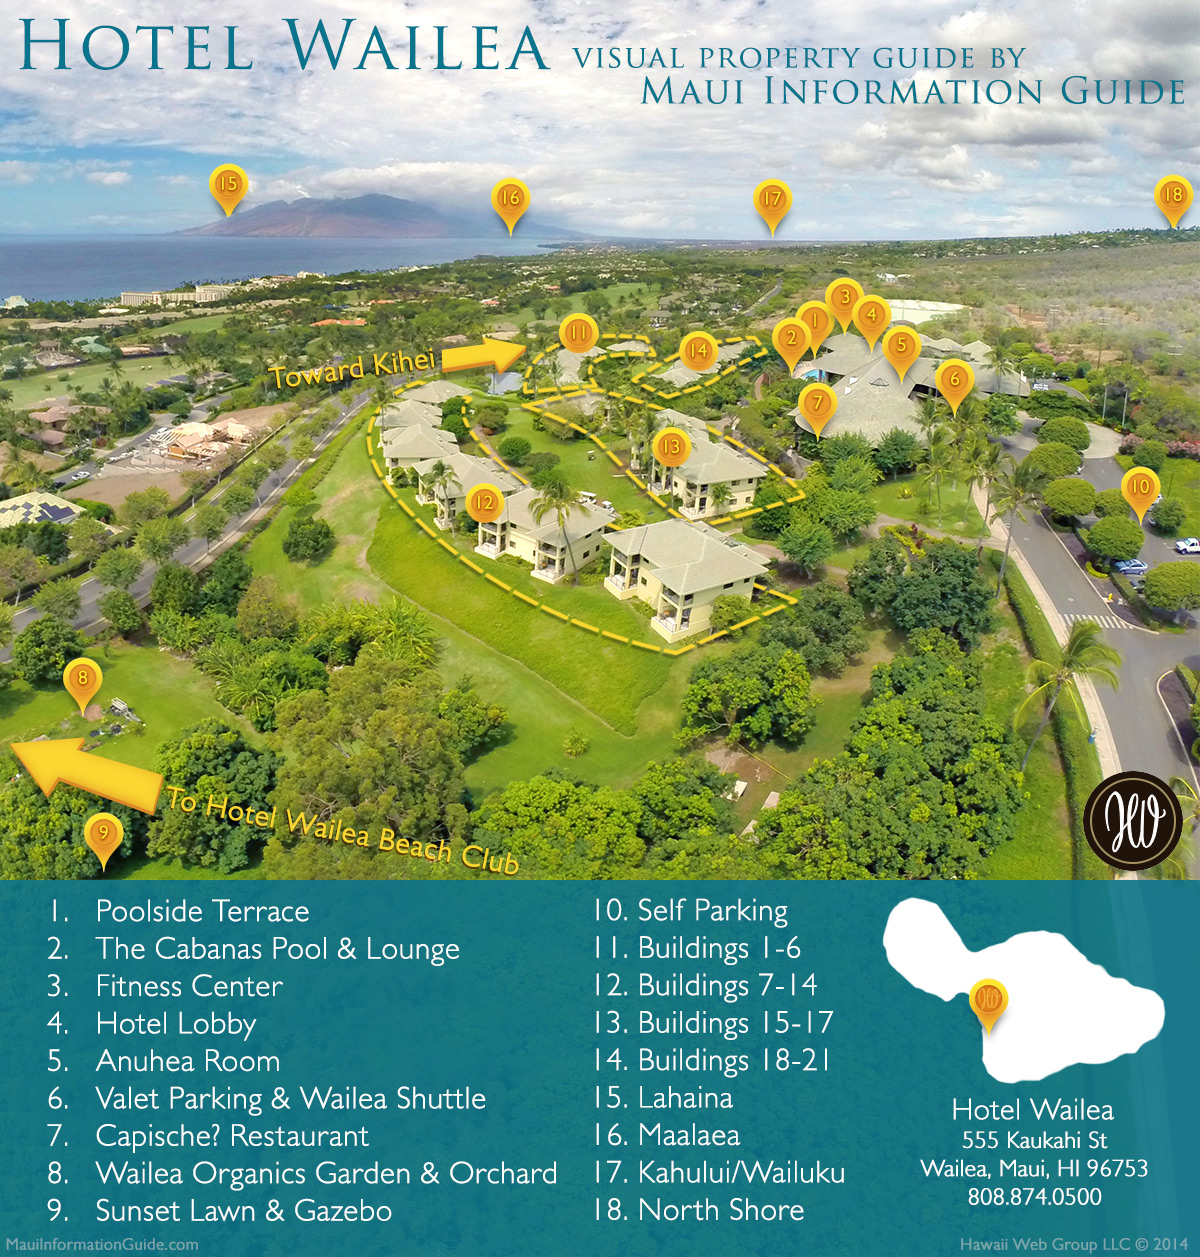 Hotel Wailea Visual Guide